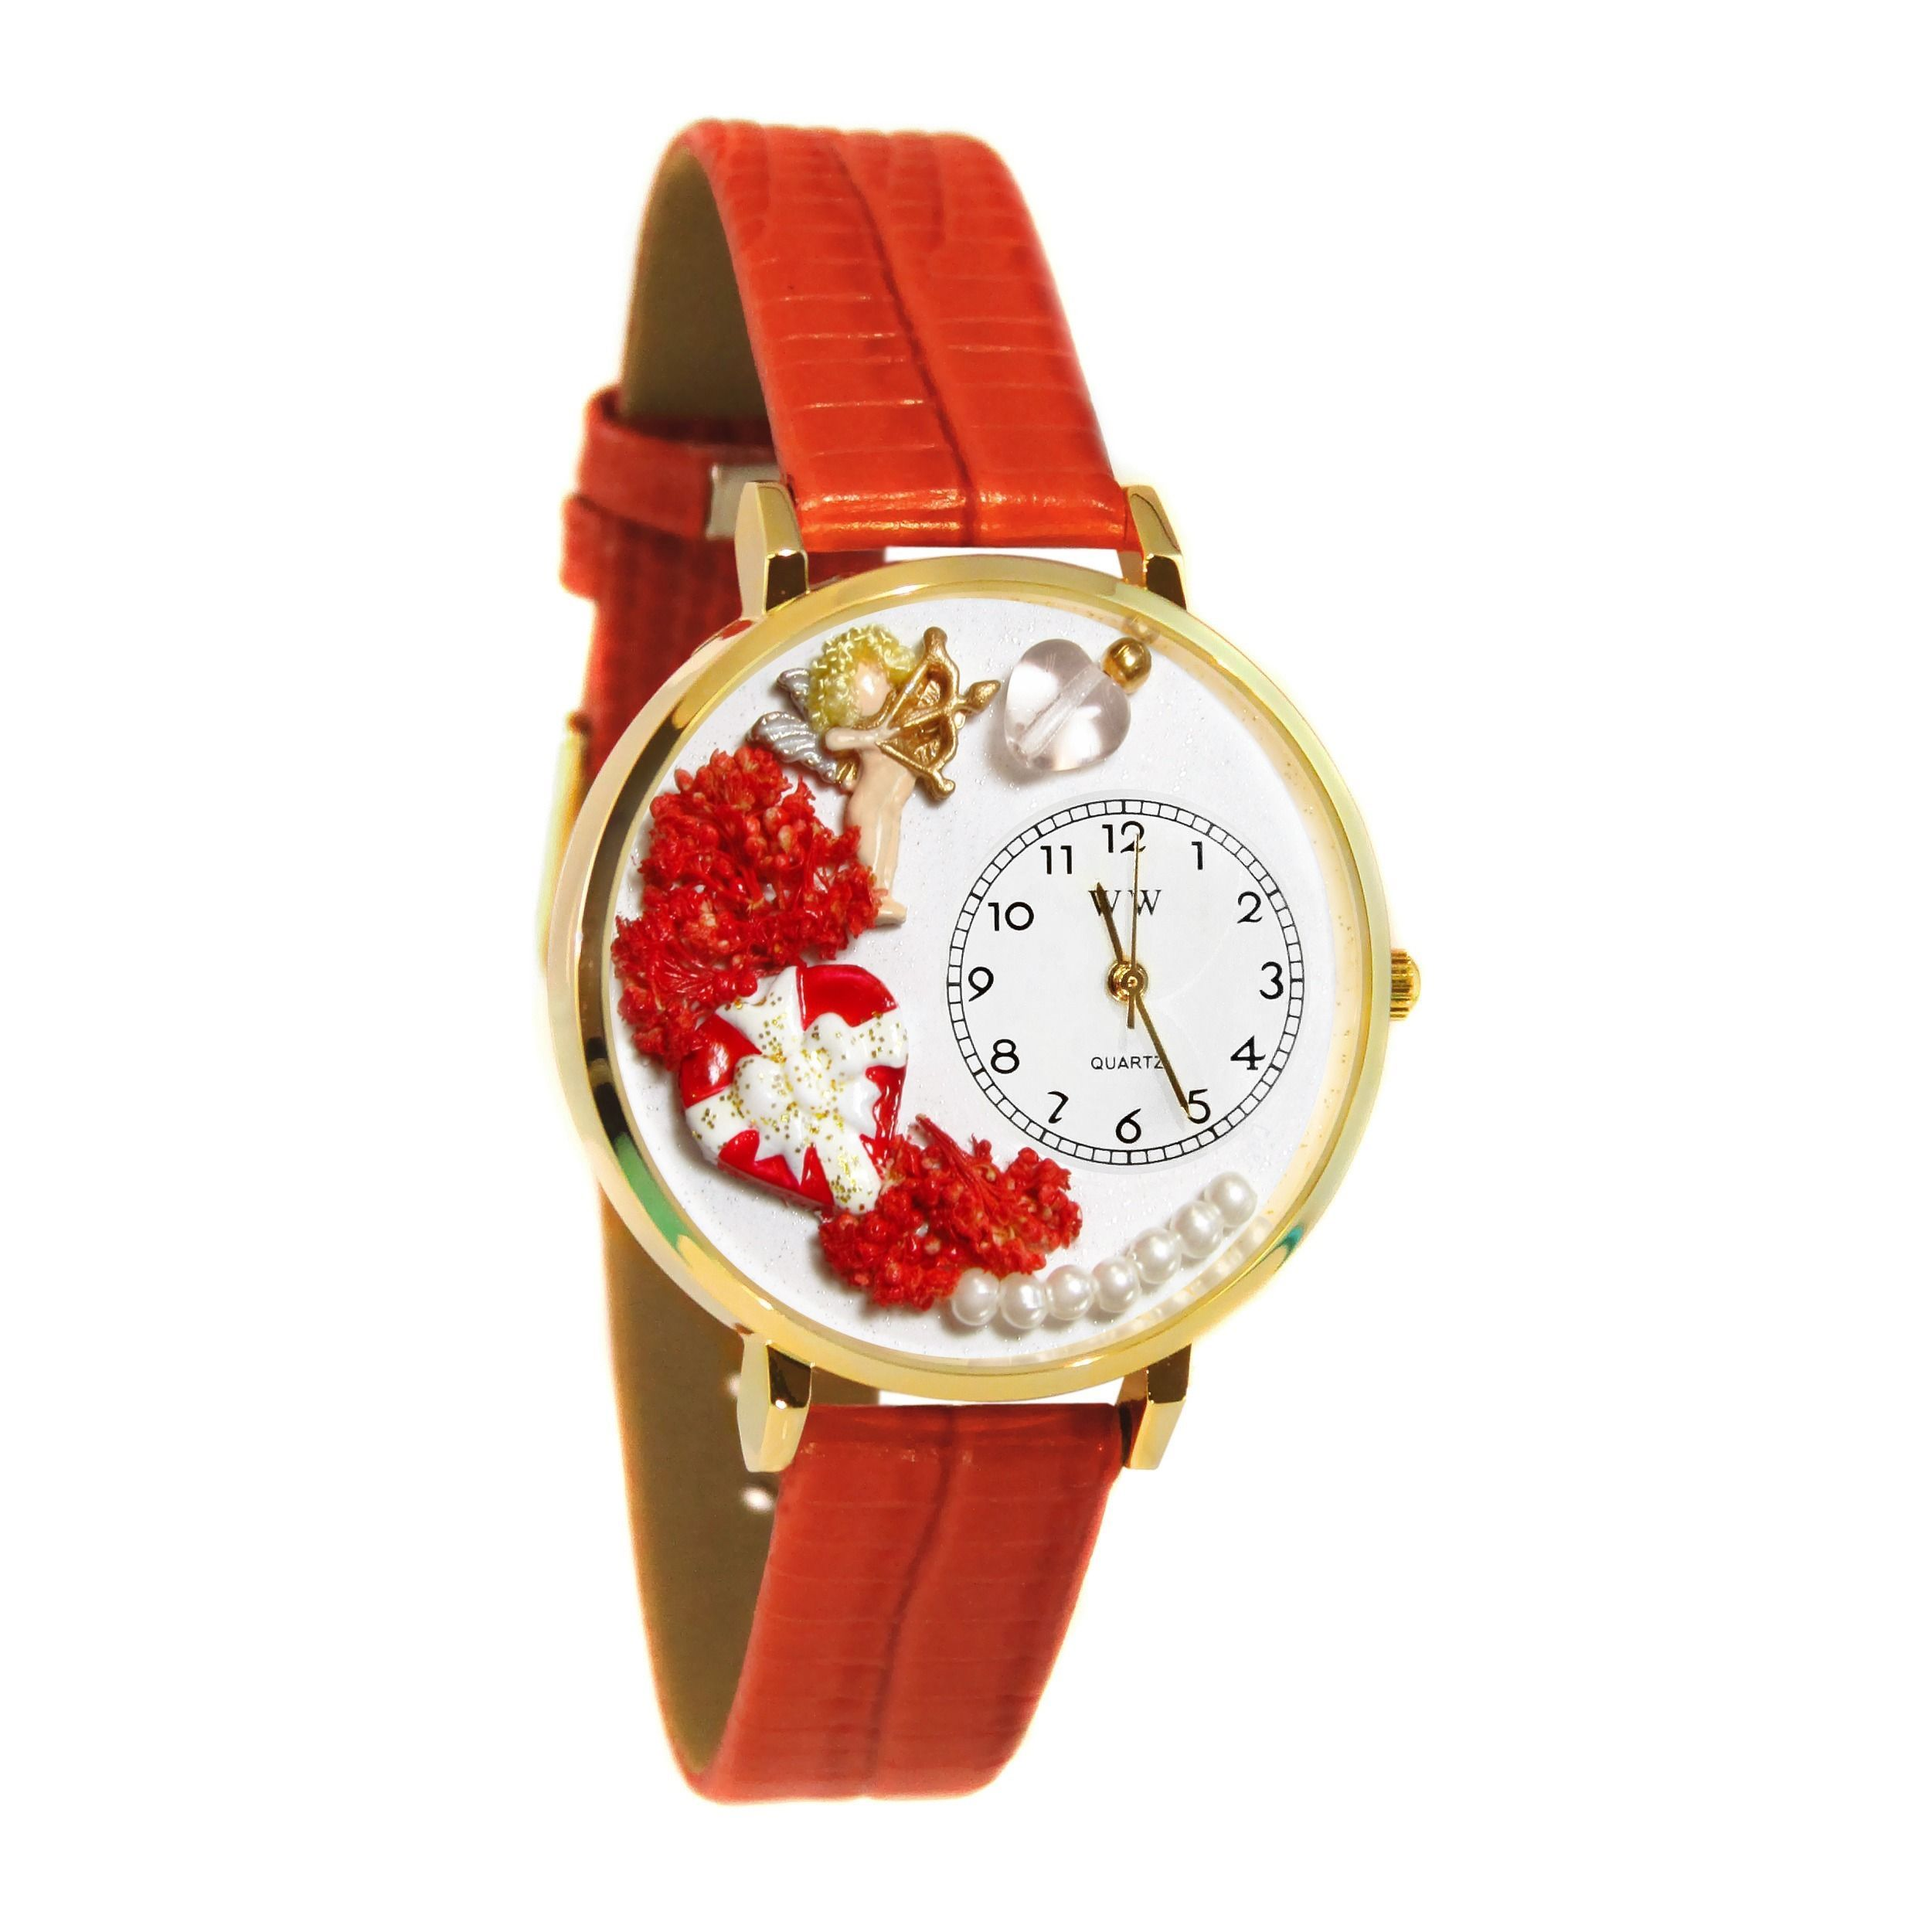 momentary s make red gun leather your moment one statement anthracite pecan a it watches